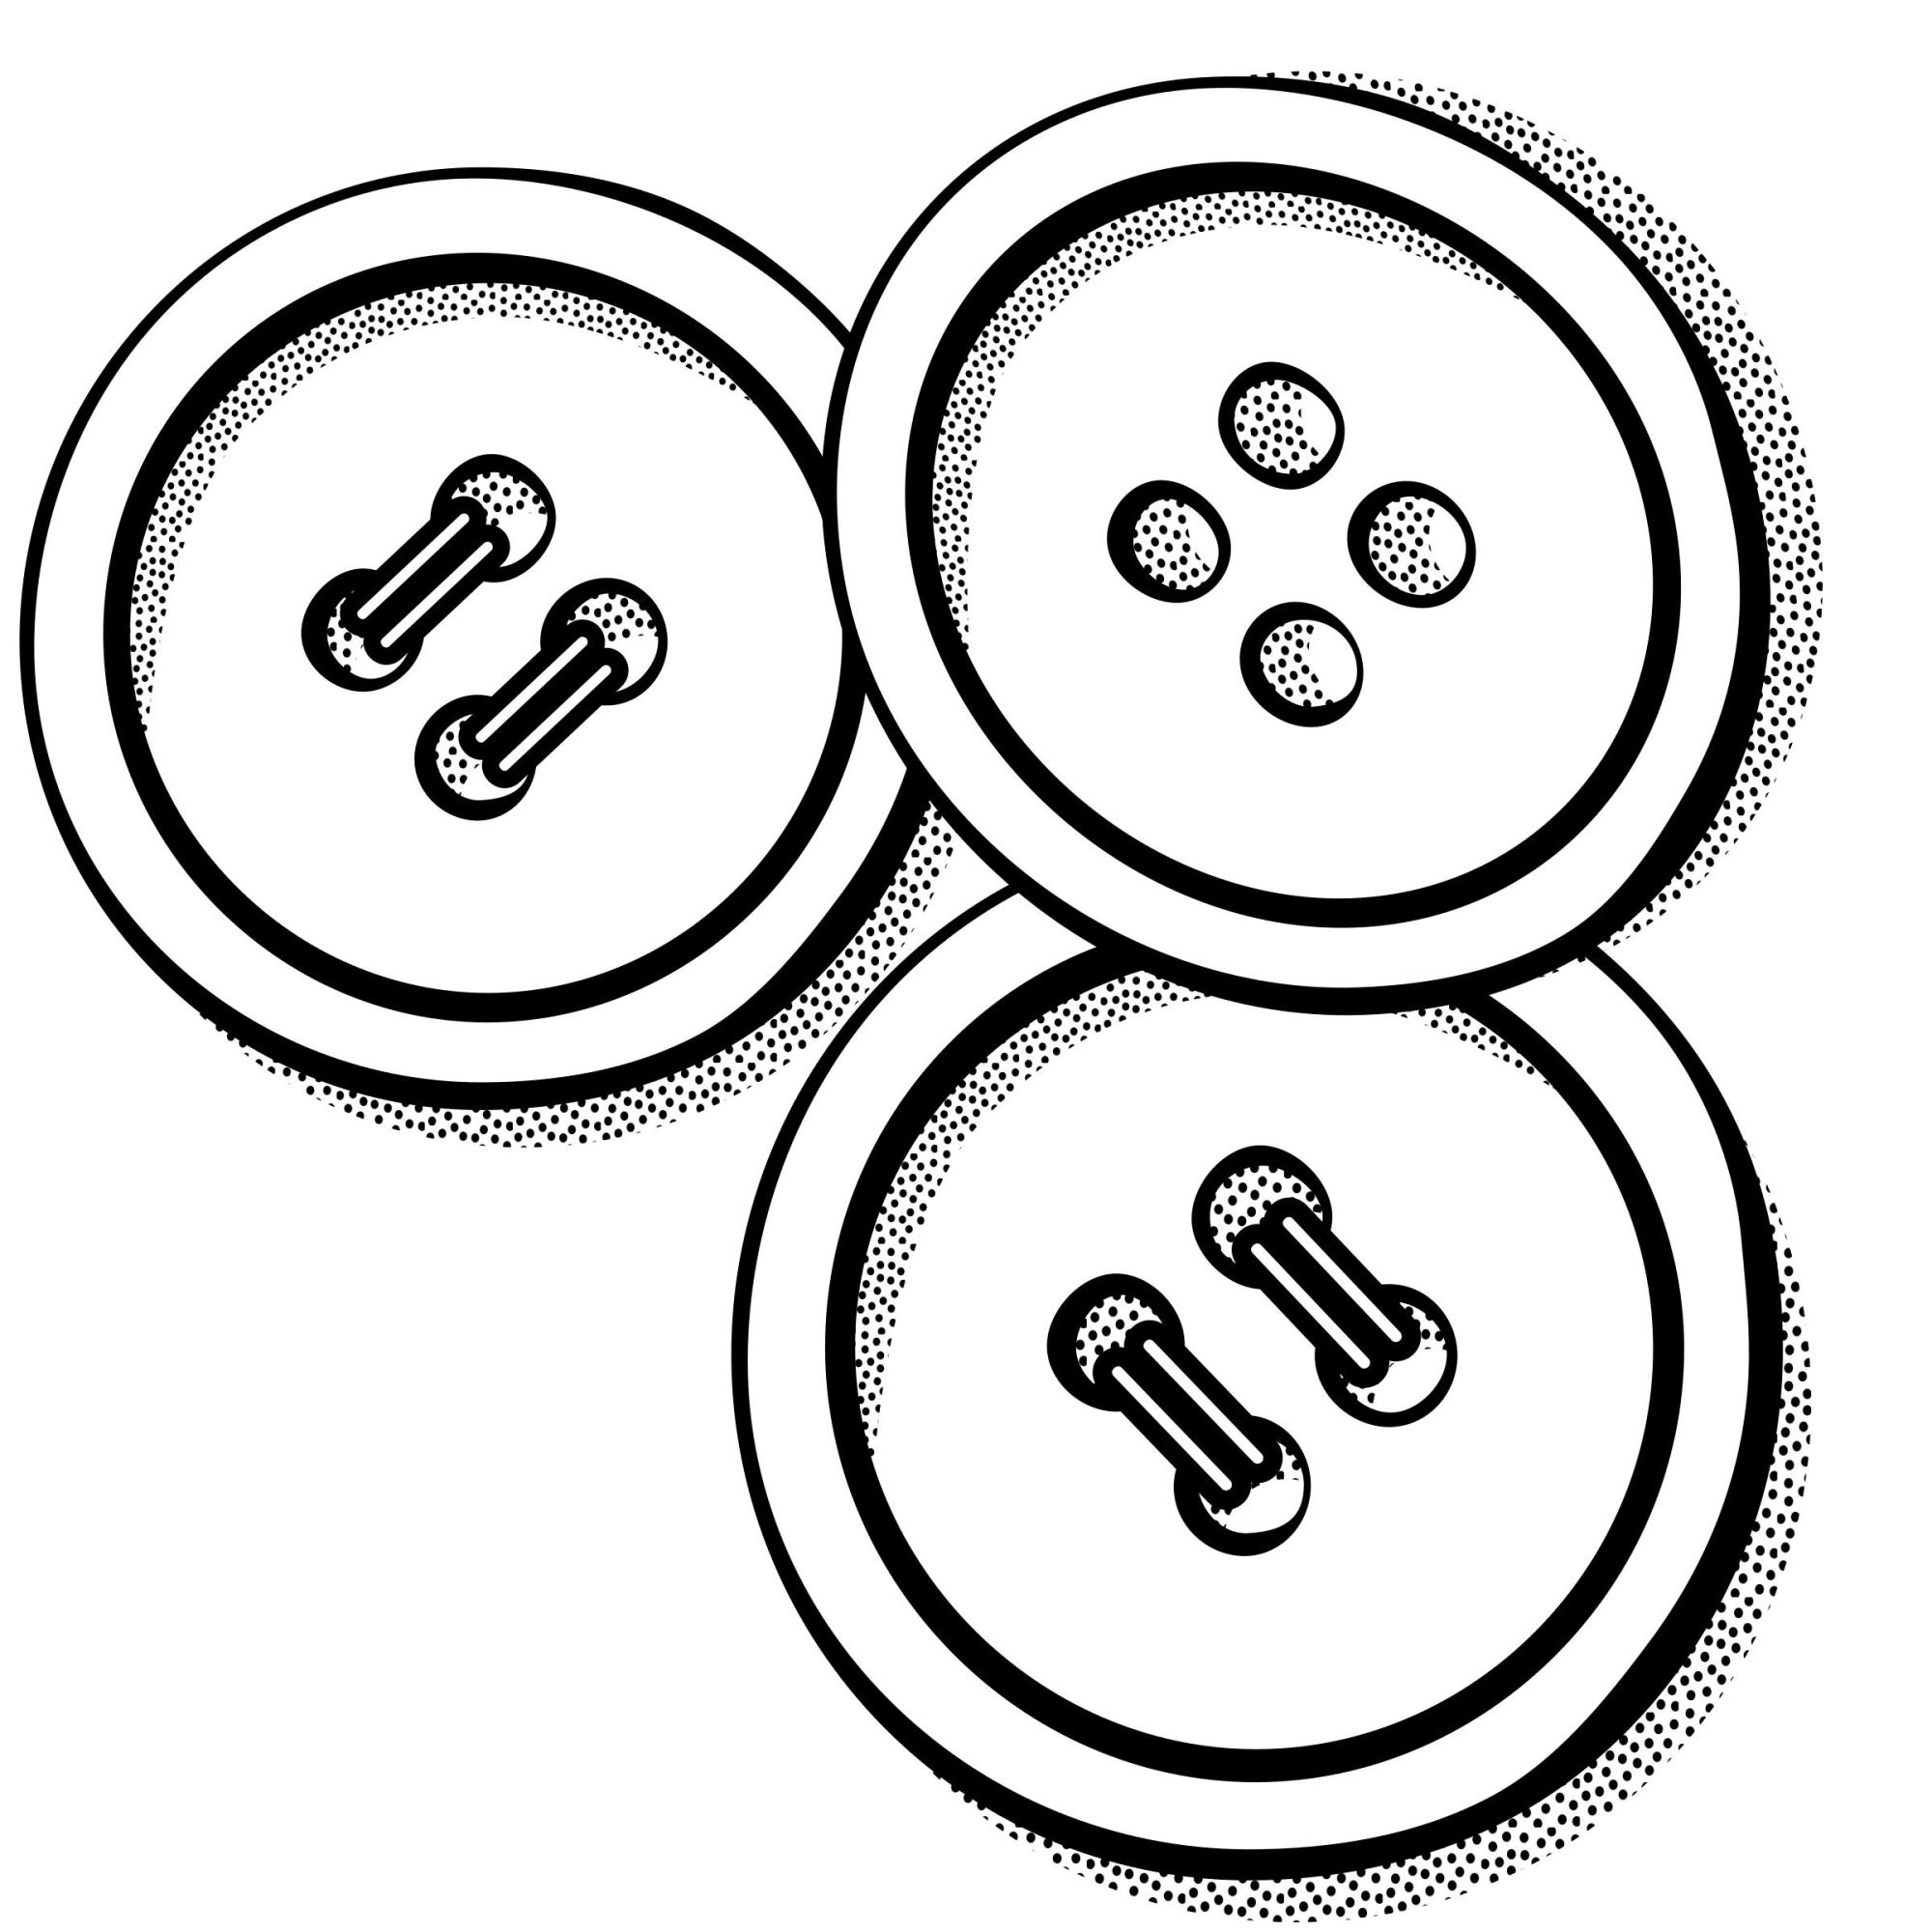 hight resolution of button clipart black and white 2